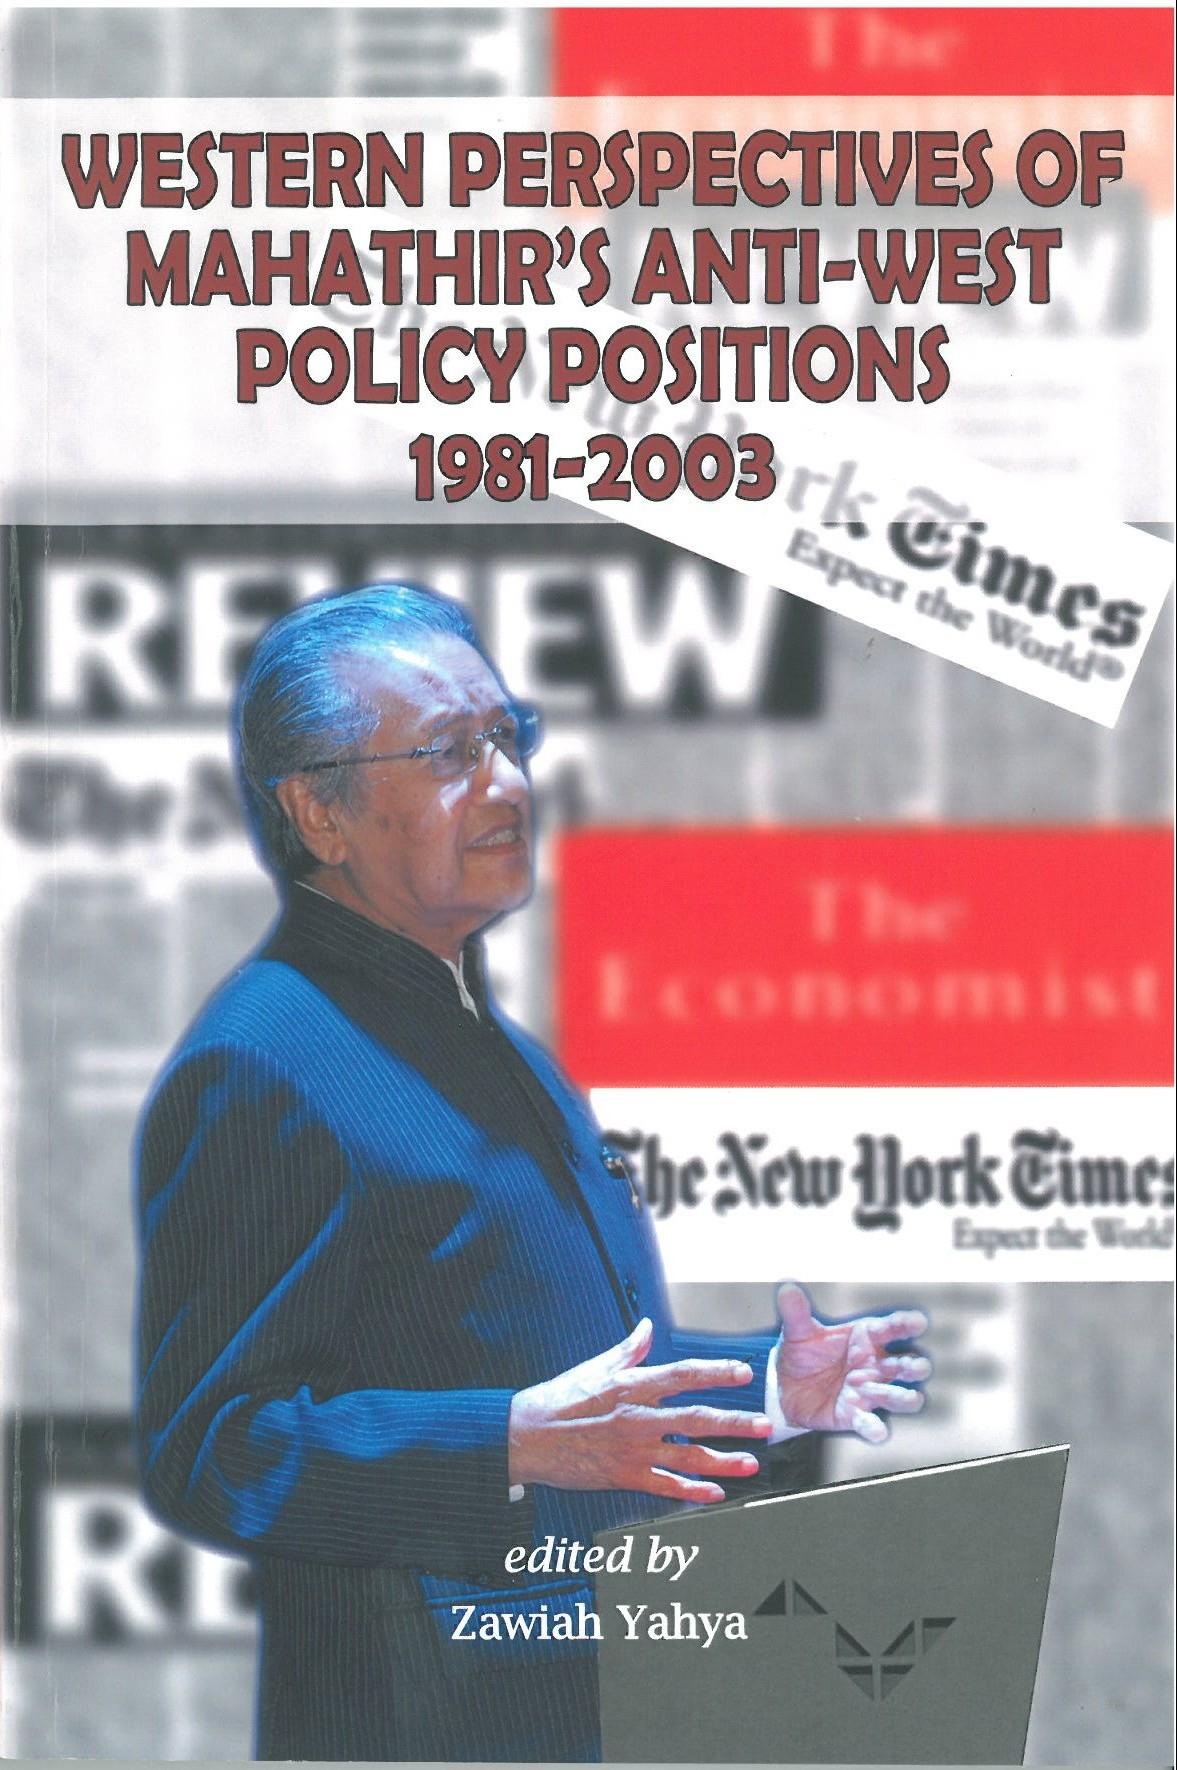 WESTERN PERSPECTIVES OF MAHATHIR'S ANTI-WEST POLICY POSITIONS 1981-2003